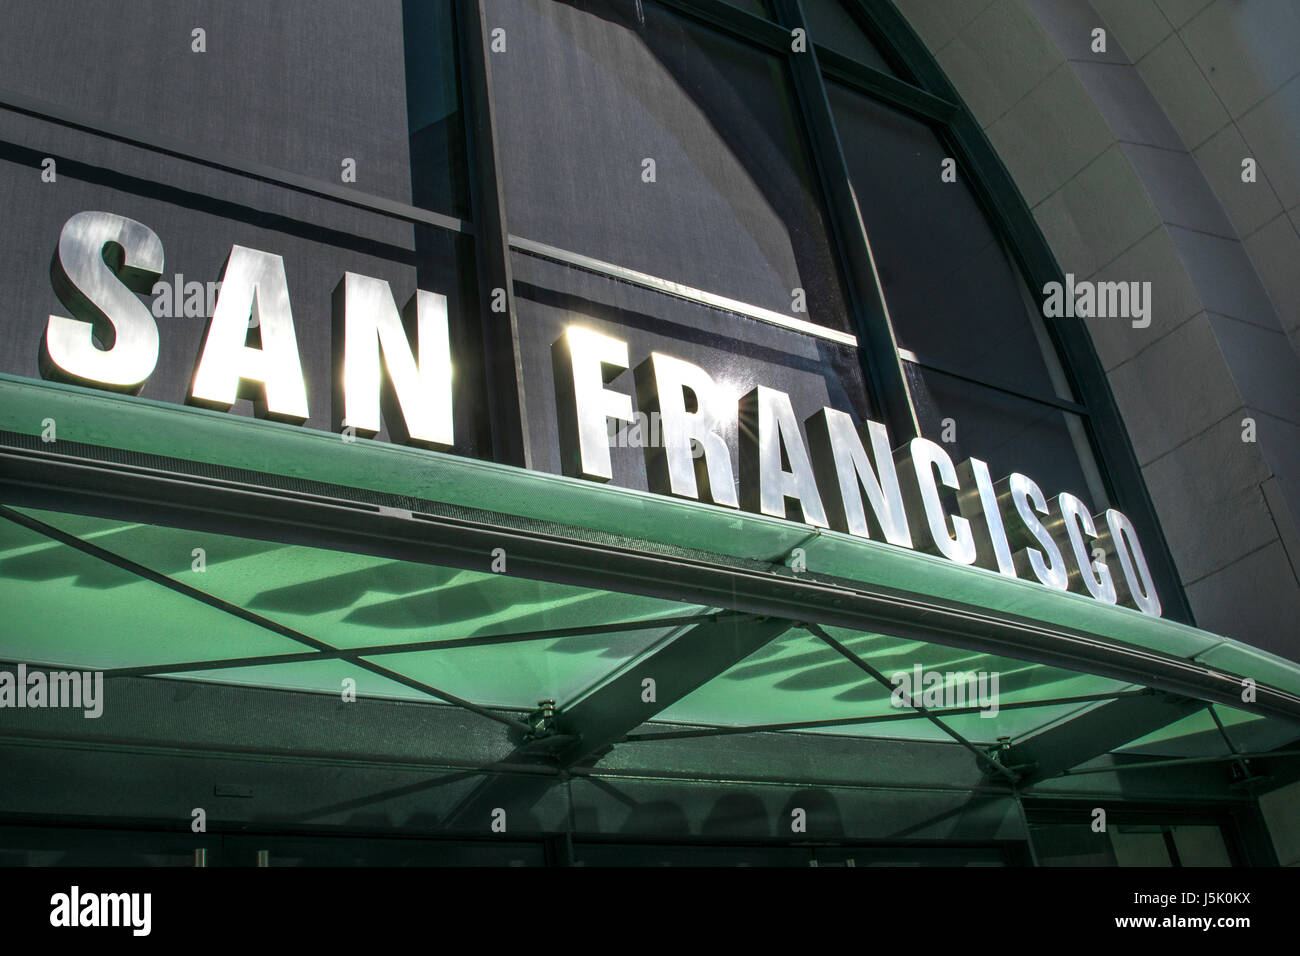 Sunlit San Francisco sign above Ferry entrance to embarkation boat piers on Embarcadero San Francisco California - Stock Image